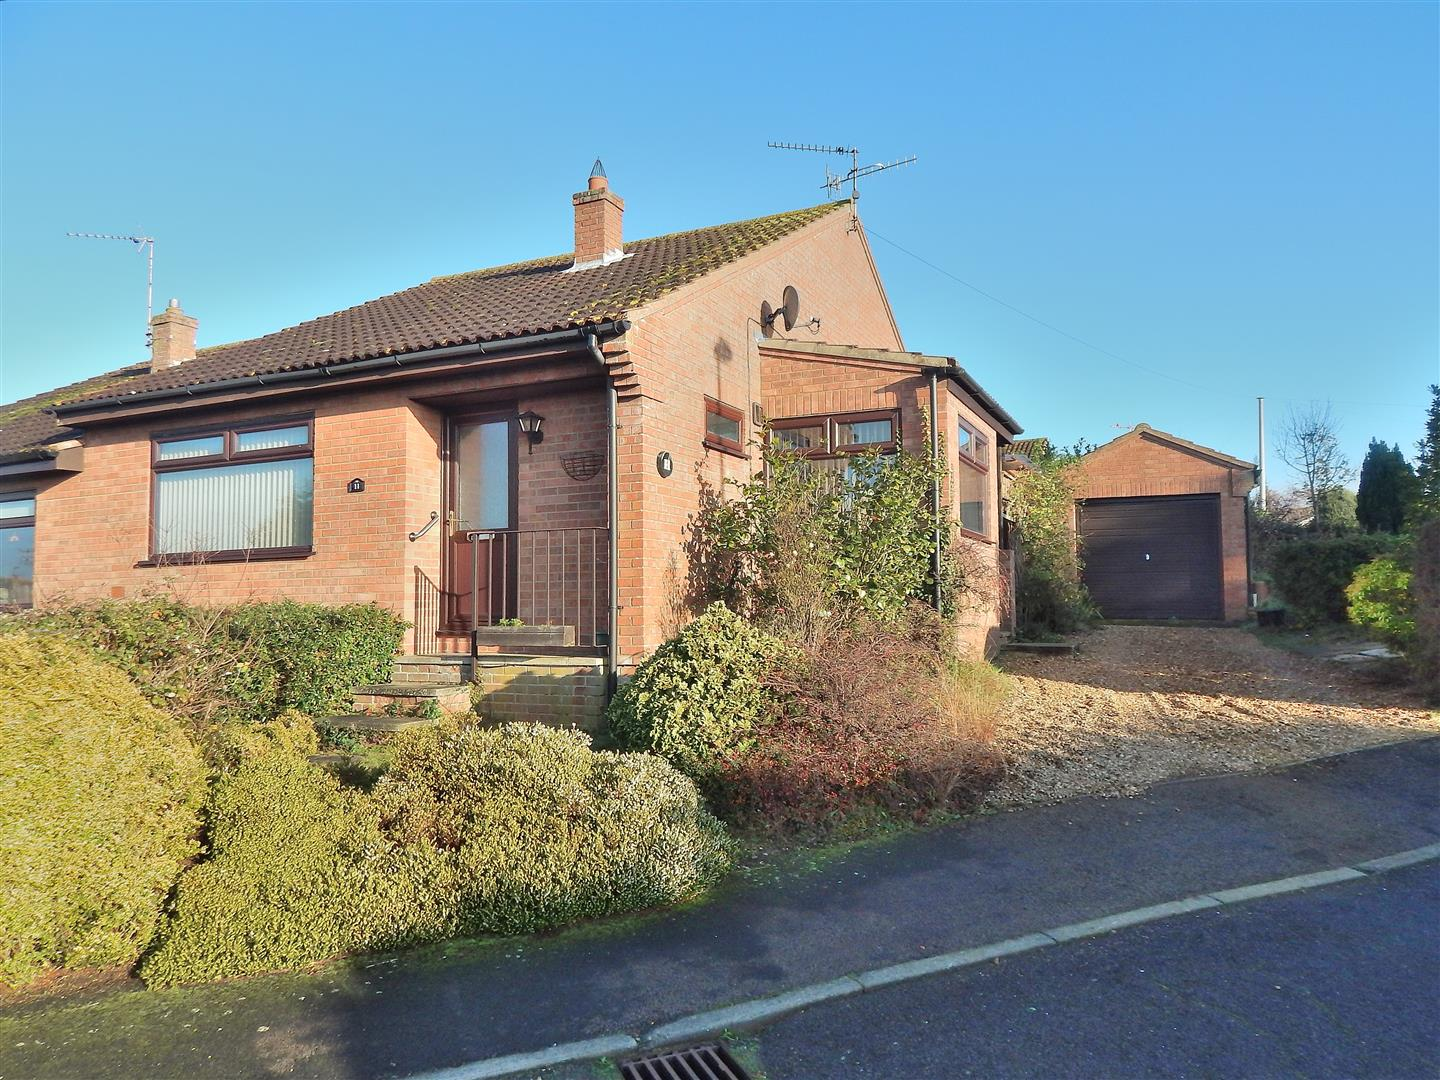 2 bed semi-detached bungalow for sale in King's Lynn, PE31 6YS, PE31